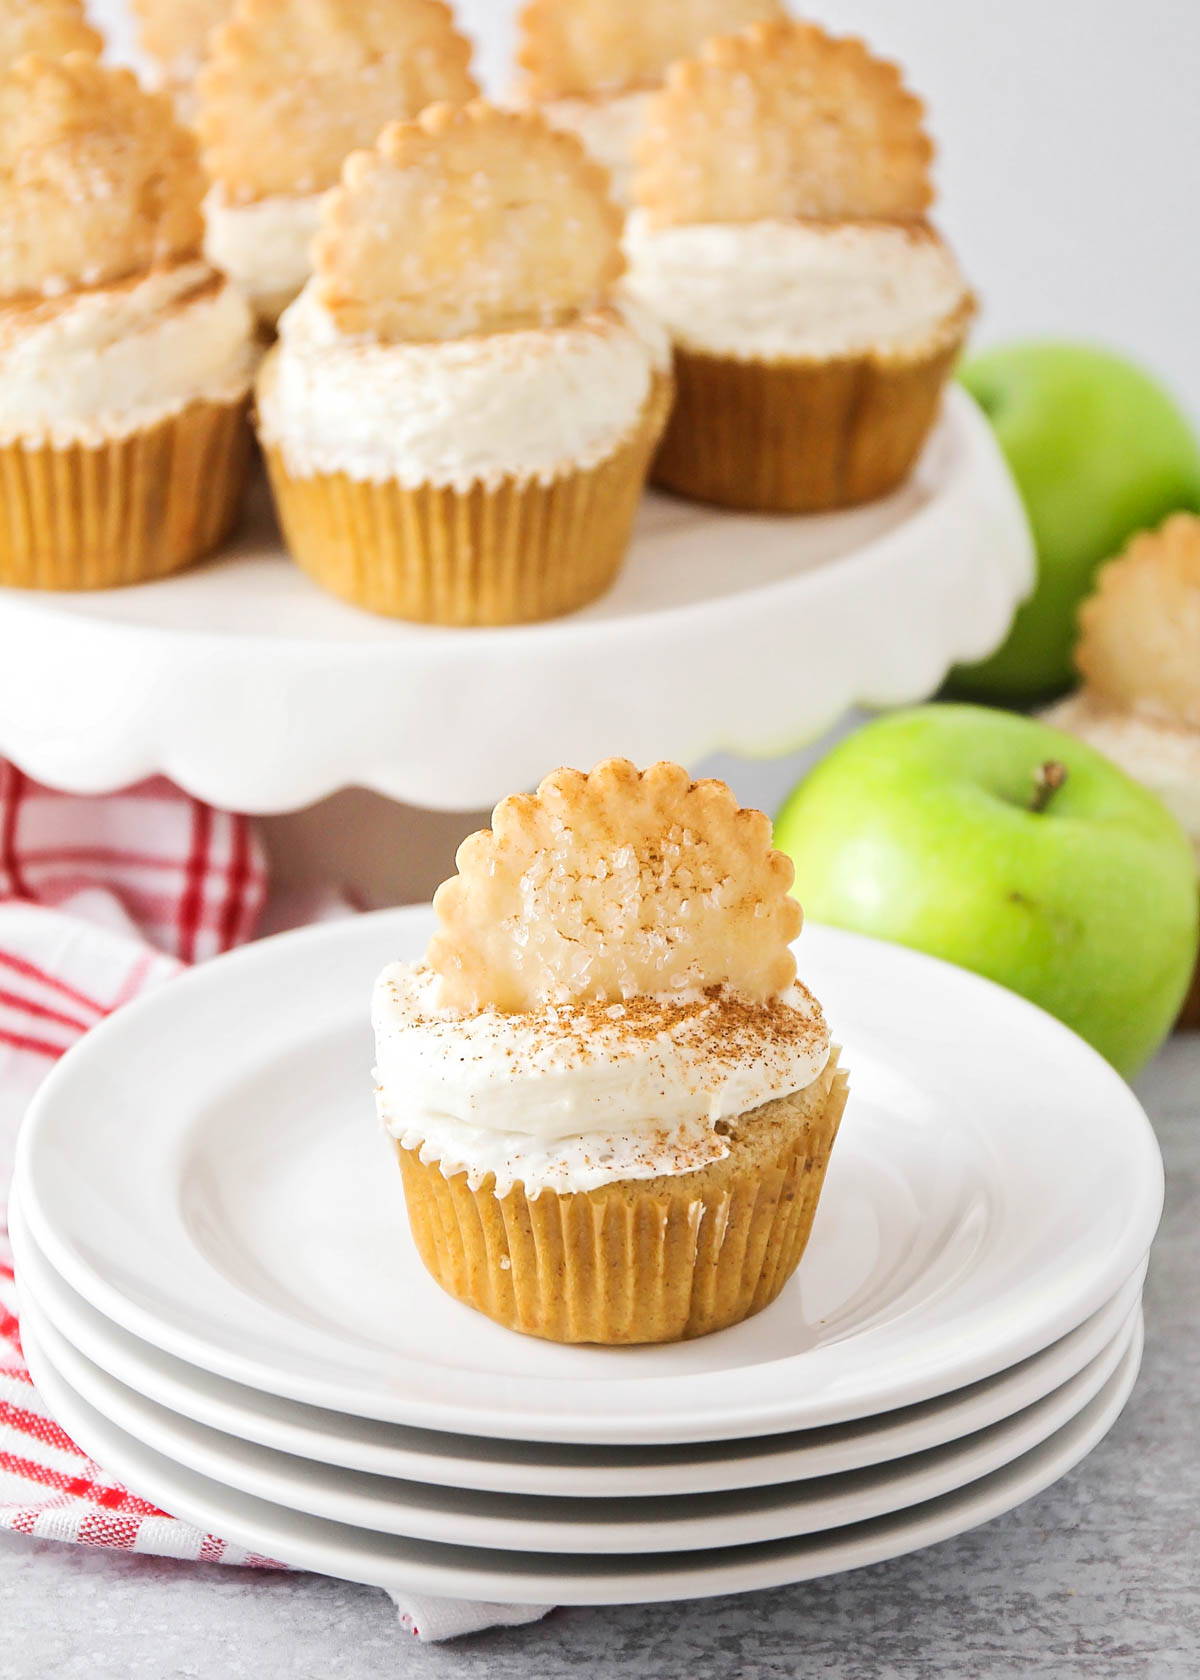 Apple pie cupcake topped with pie crisp, served on a white plate